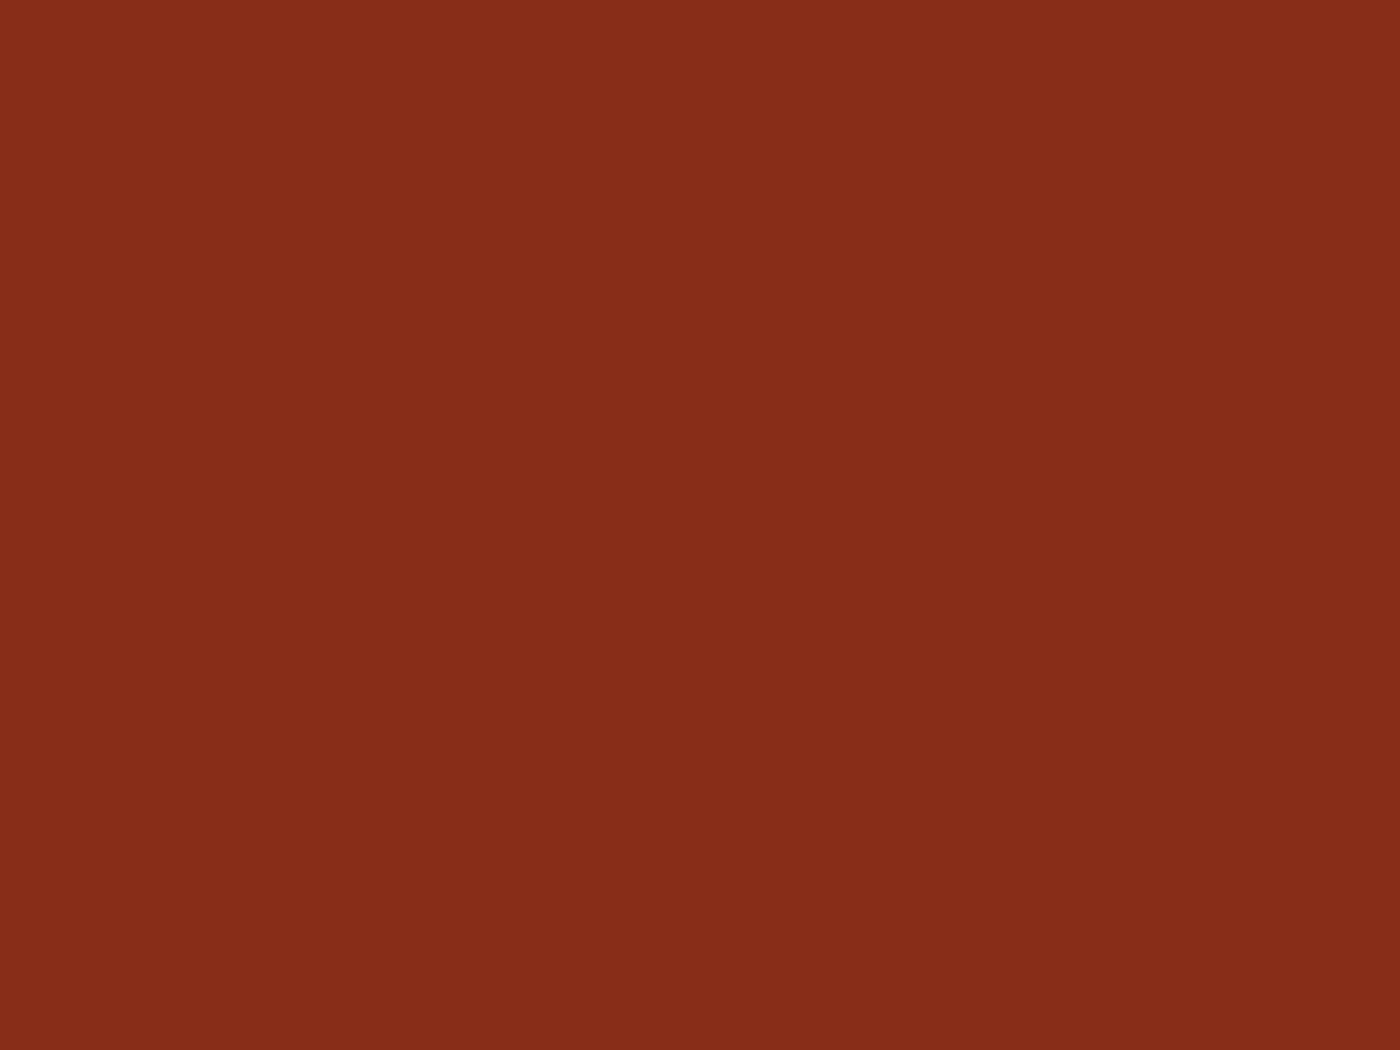 1400x1050 Sienna Solid Color Background